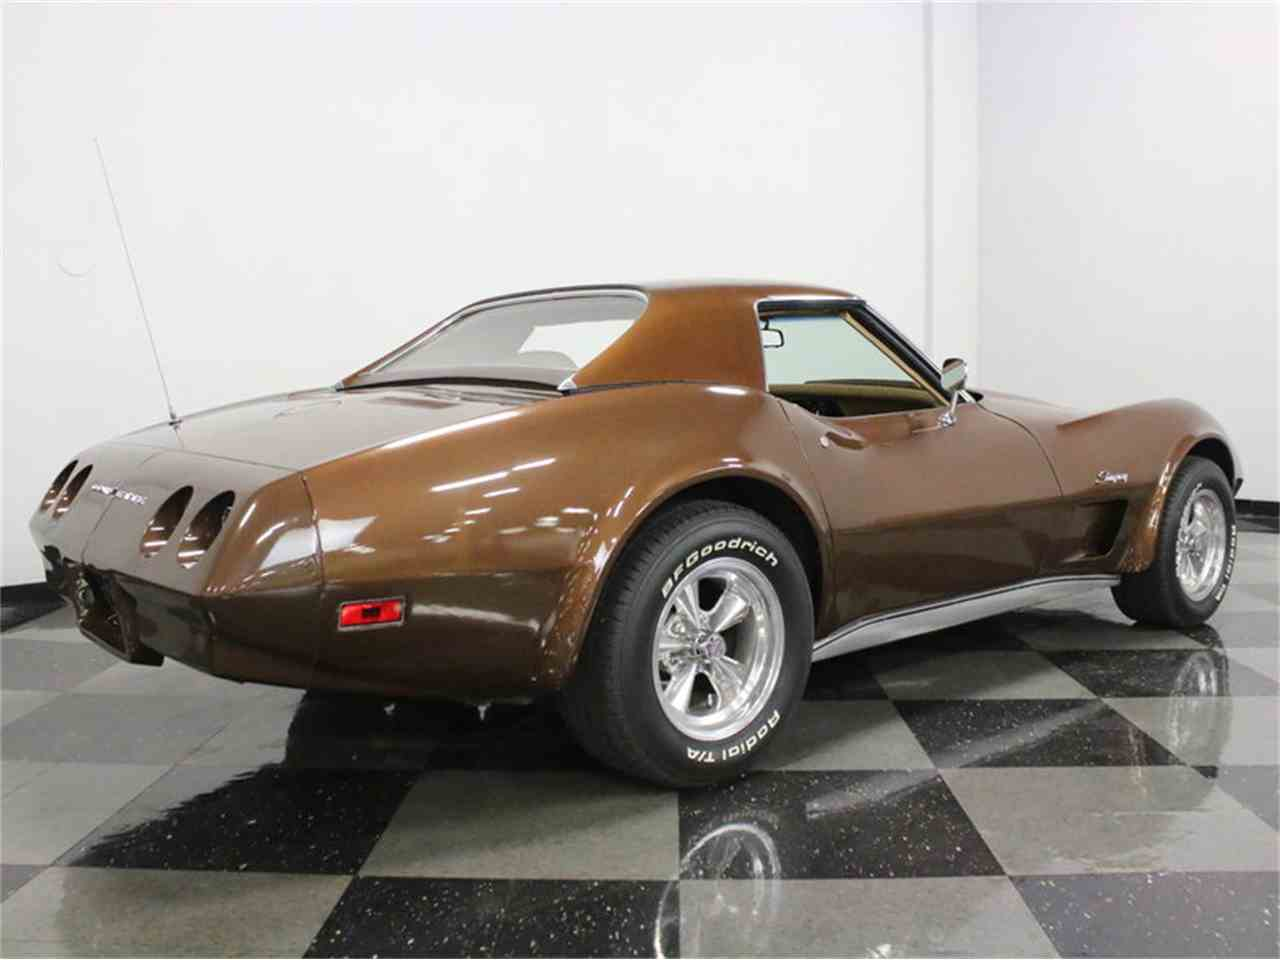 Large Picture of 1974 Chevrolet Corvette located in Texas - $22,995.00 Offered by Streetside Classics - Dallas / Fort Worth - LBK6